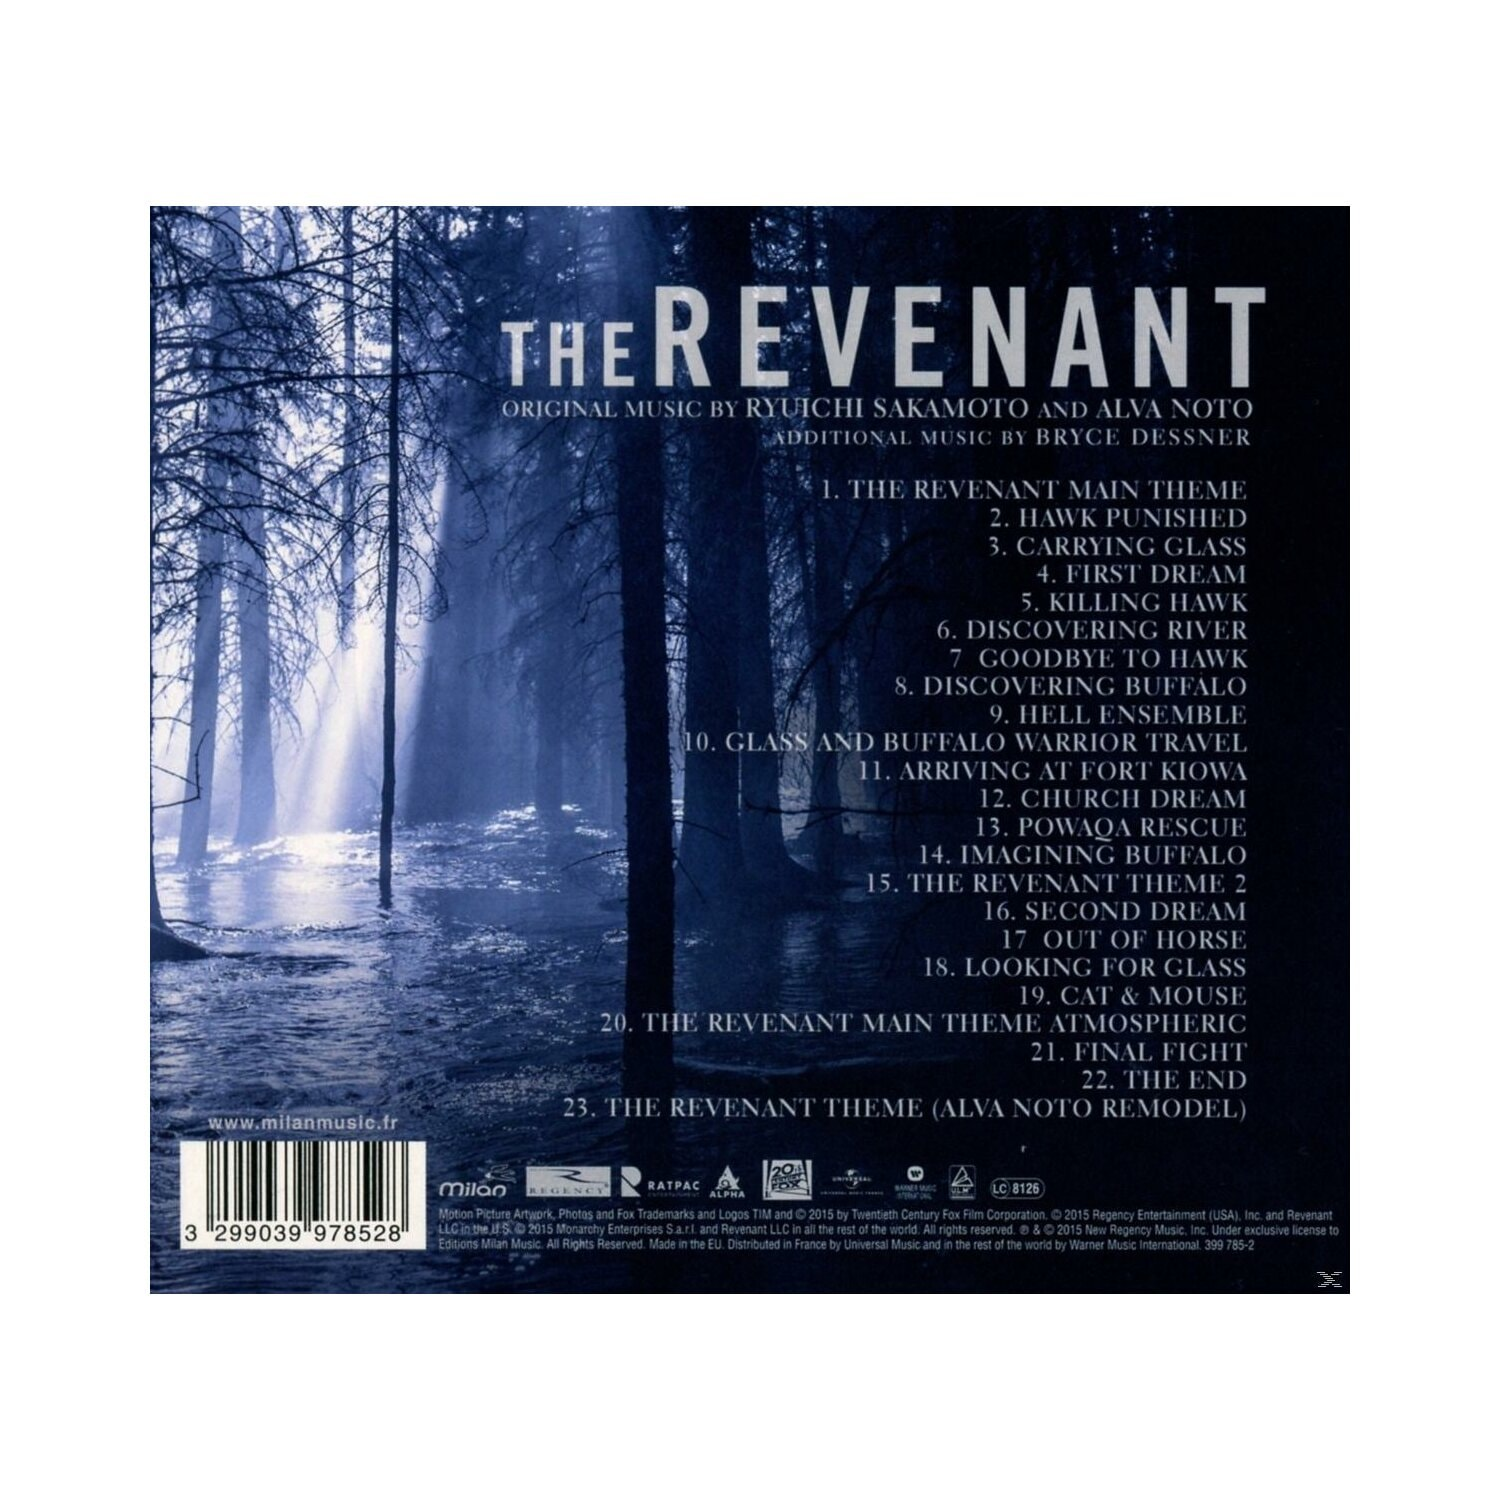 THE REVENANT (OST)